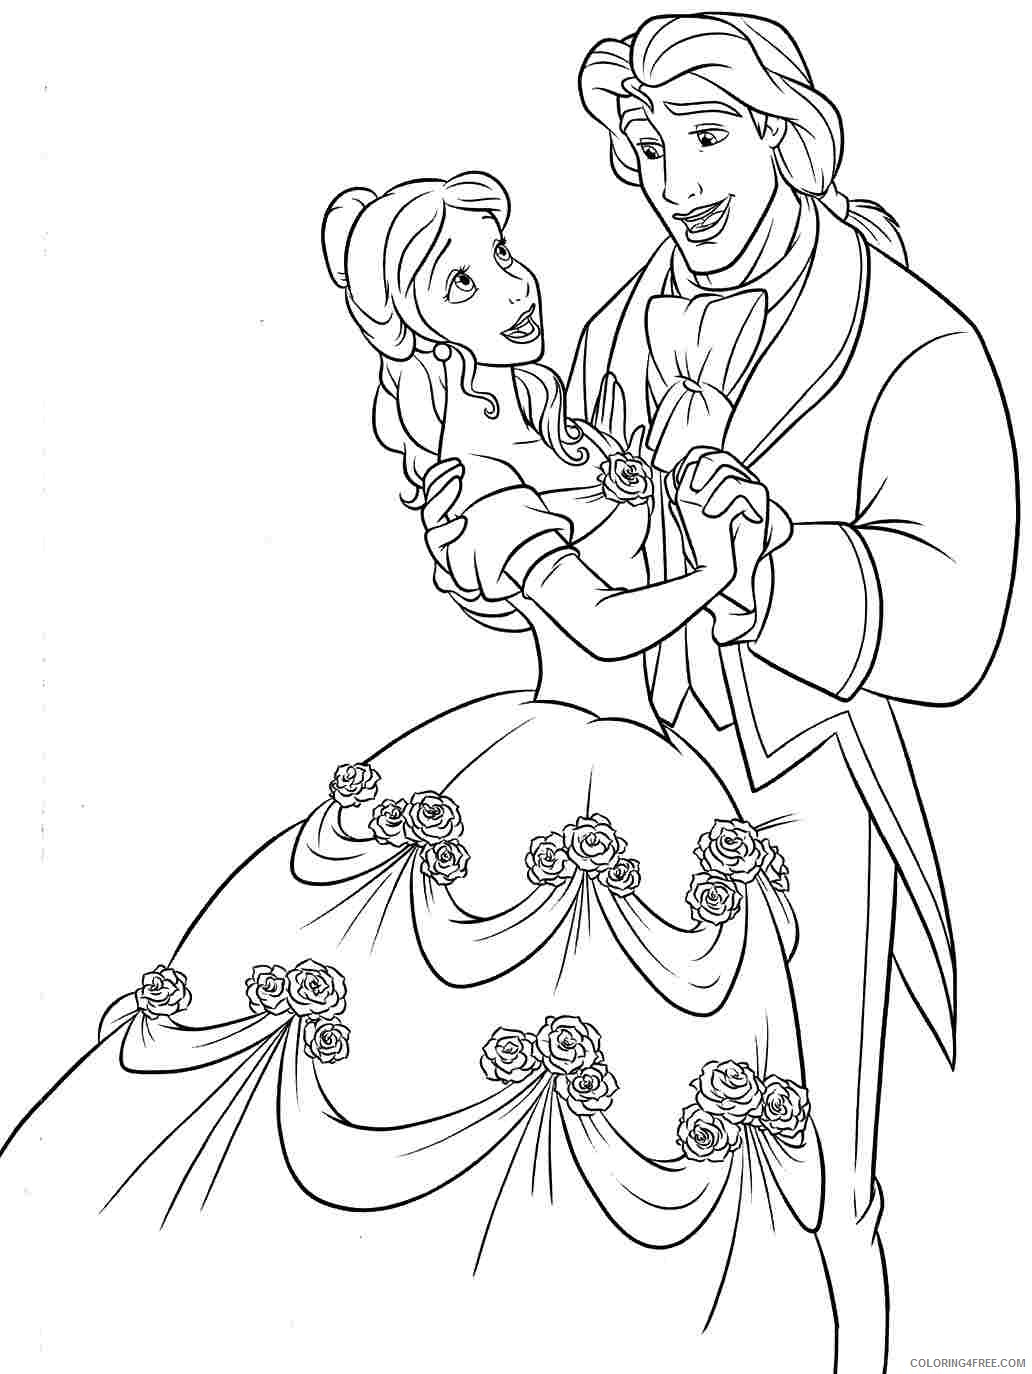 belle coloring pages and the prince Coloring4free